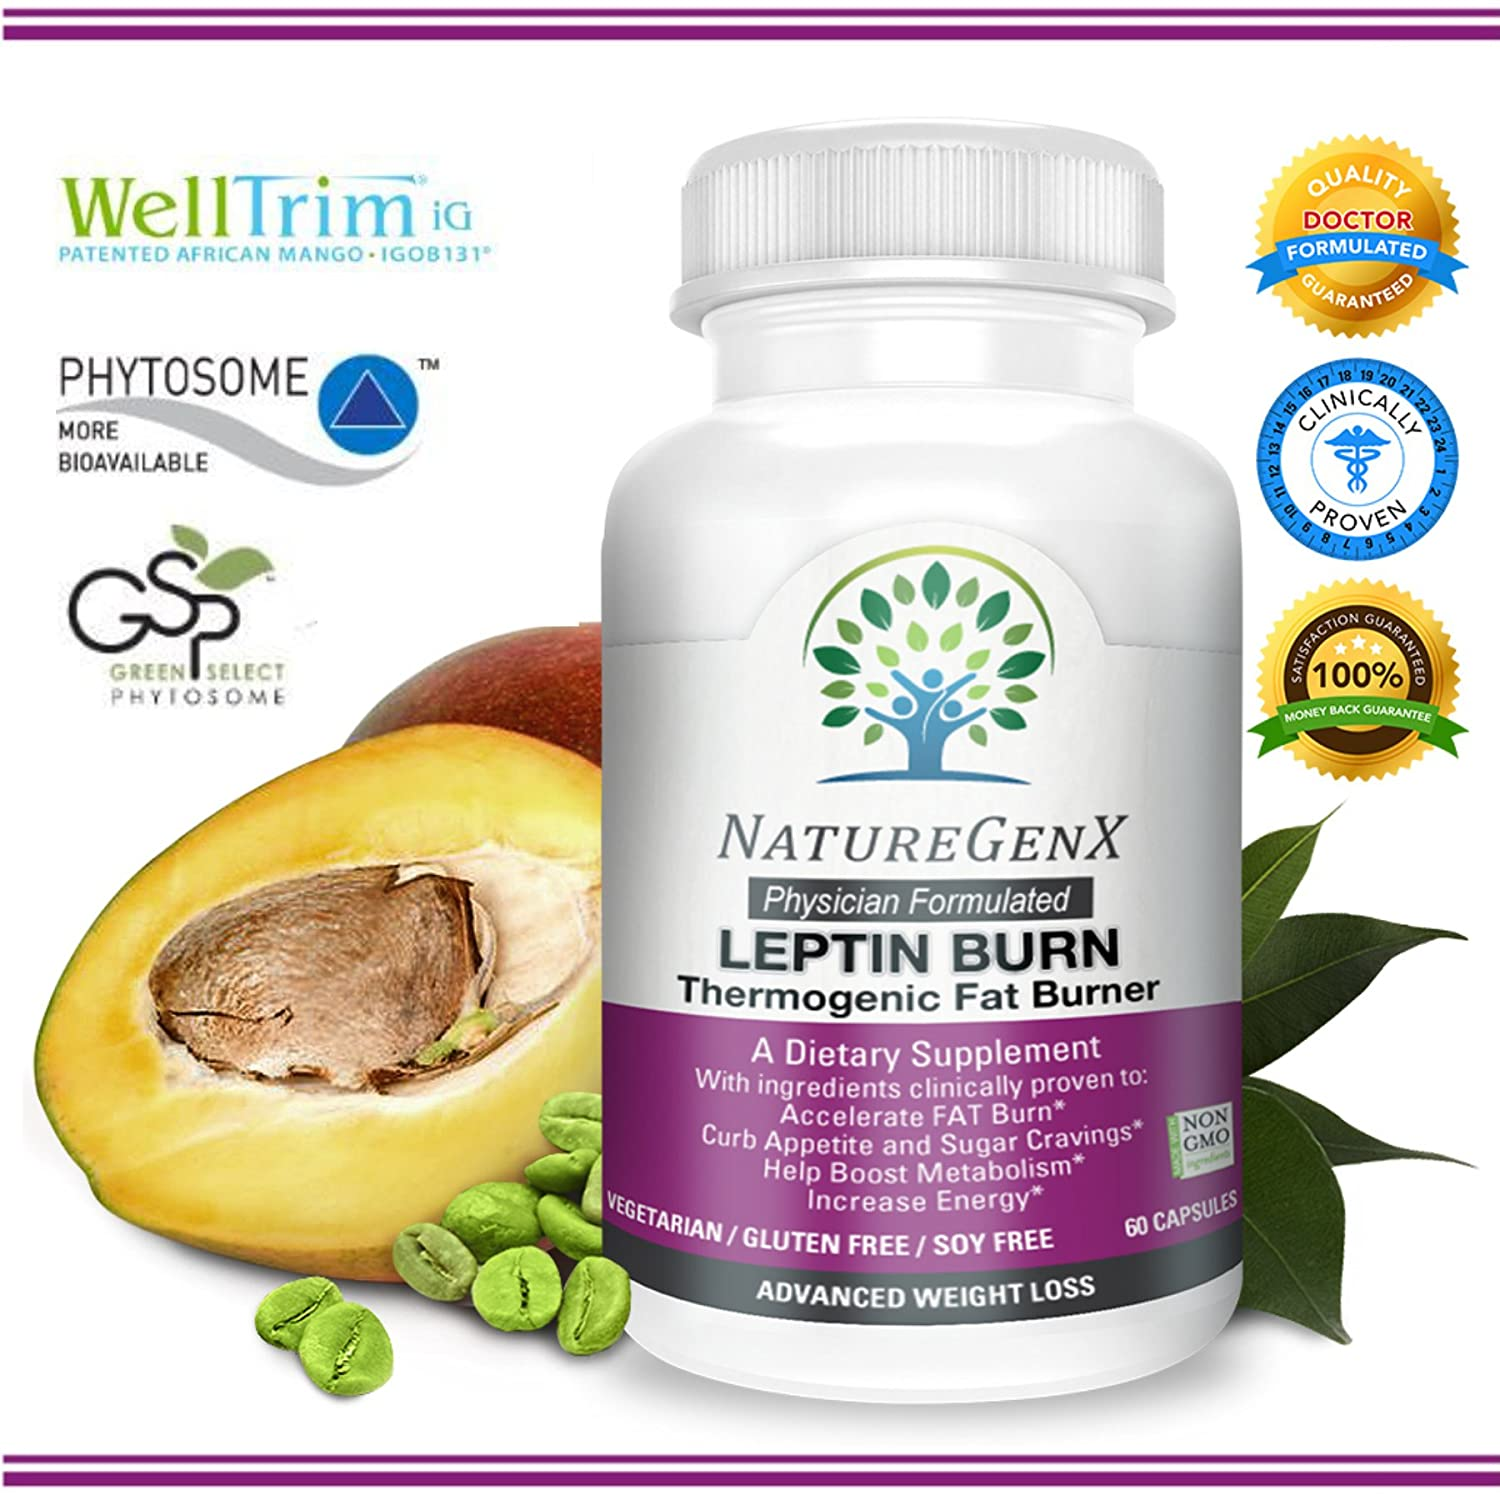 NatureGenX – Leptin Burn Thermogenic Fat Burner Clinically Proven – Appetite Control and Boost Metabolism Leptin Supplements for Weight Loss Woman Men Doctor Formulated Non-GMO 60 V-Caps